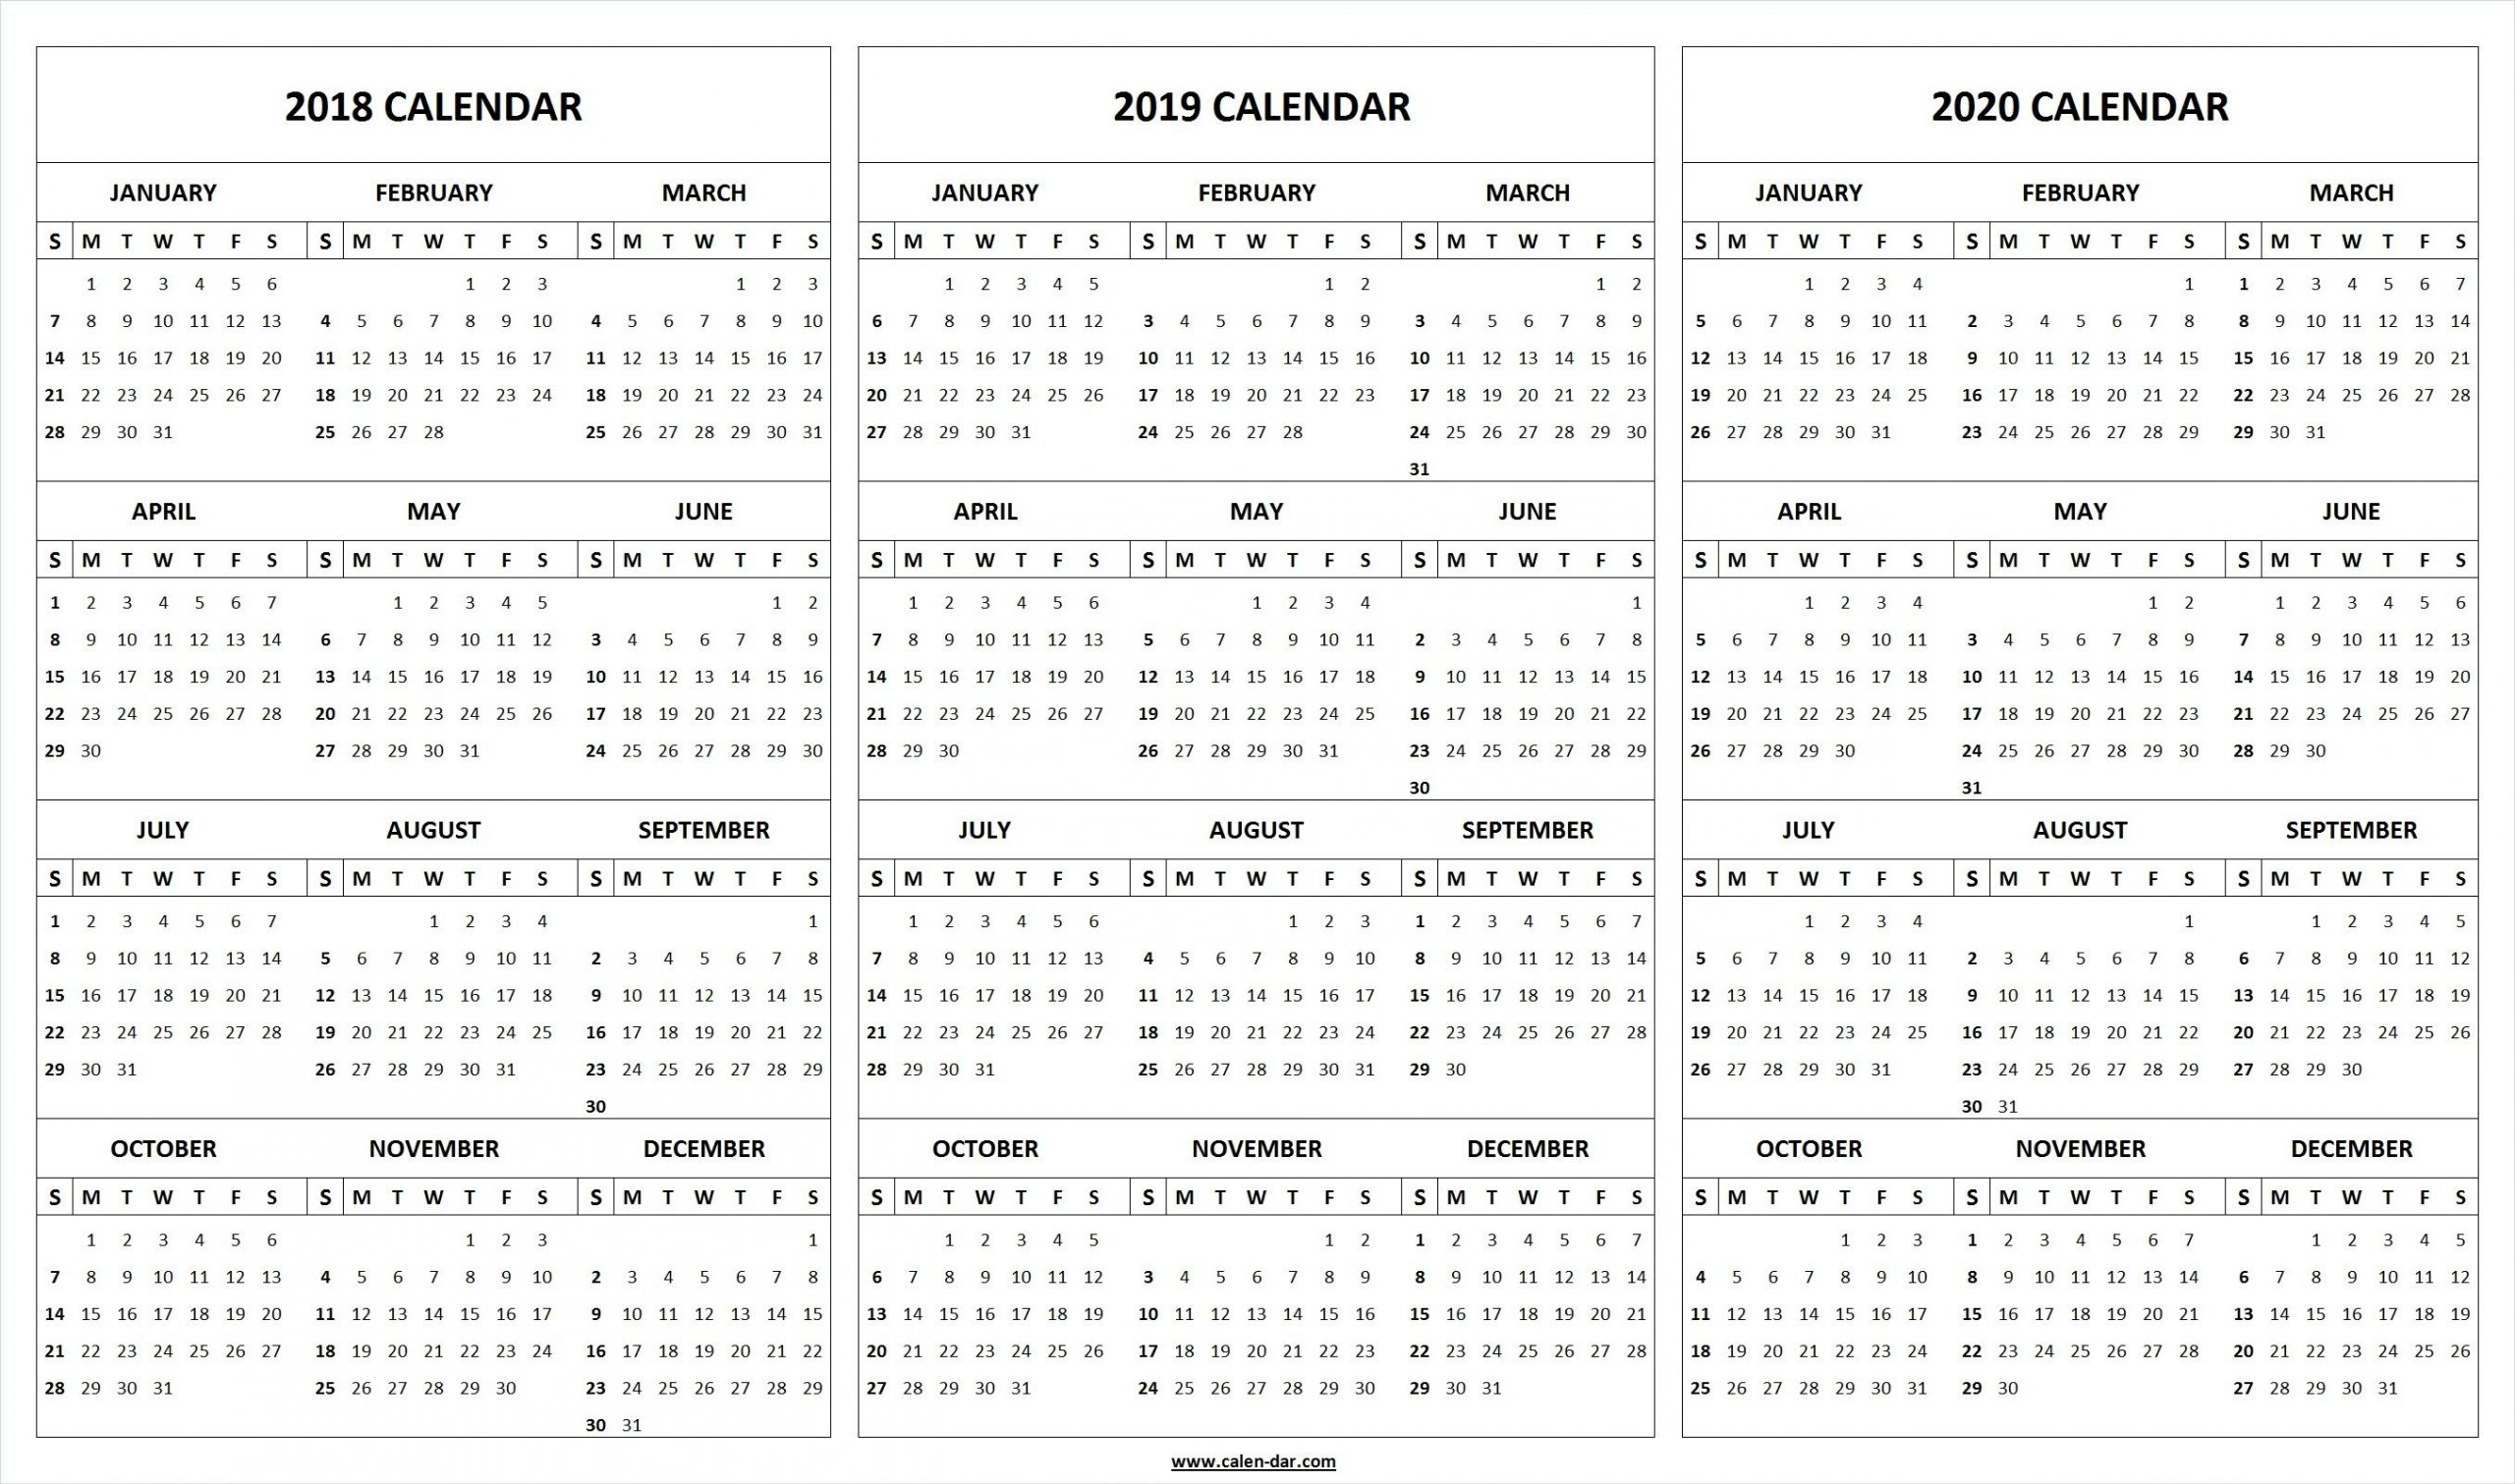 Print Blank 2018 2019 2020 Calendar Template | Printable within 2019 2020 Calendar Space To Write